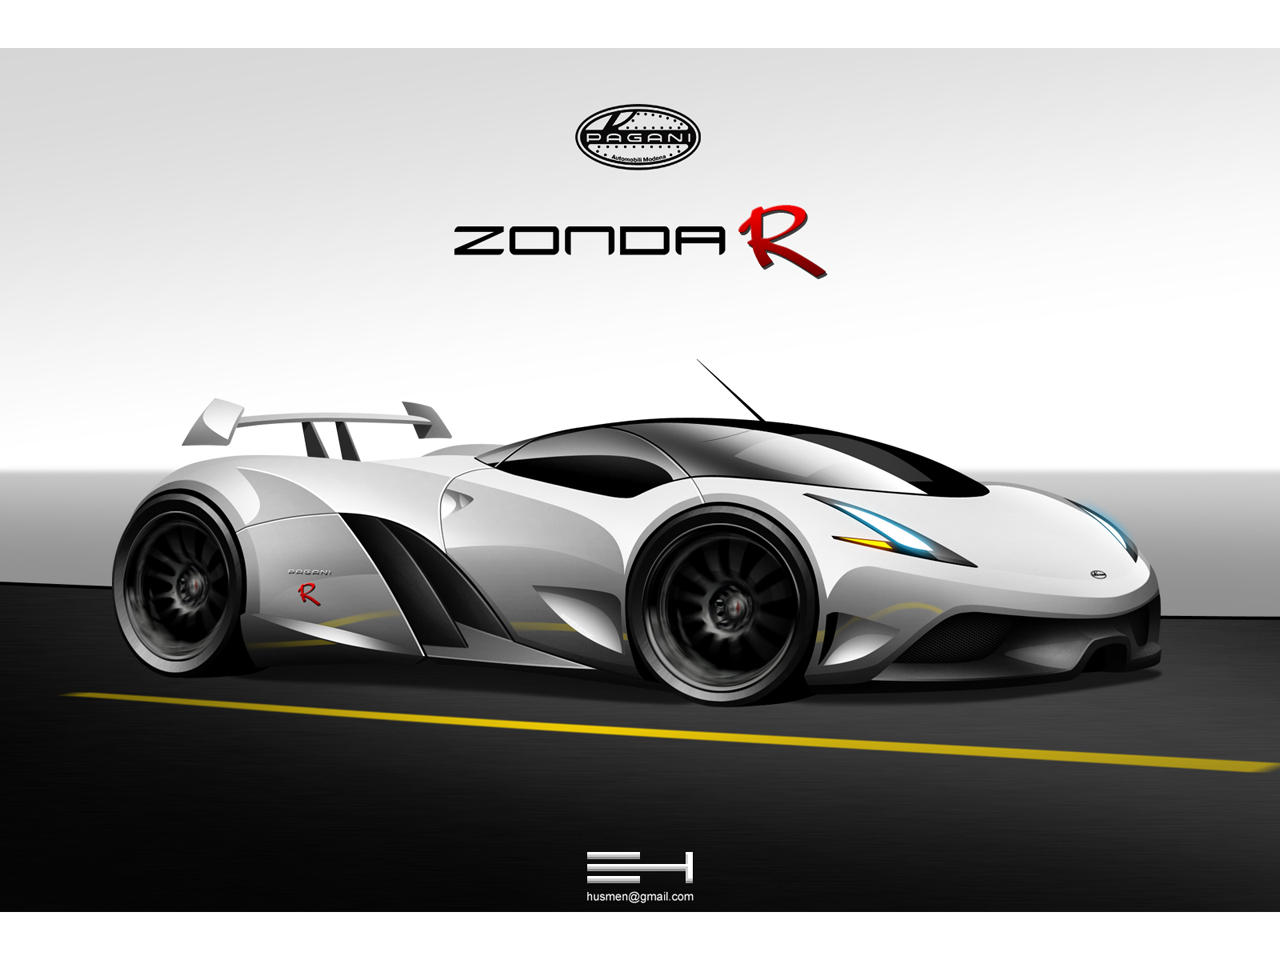 pagani zonda r by emrehusmen on deviantart